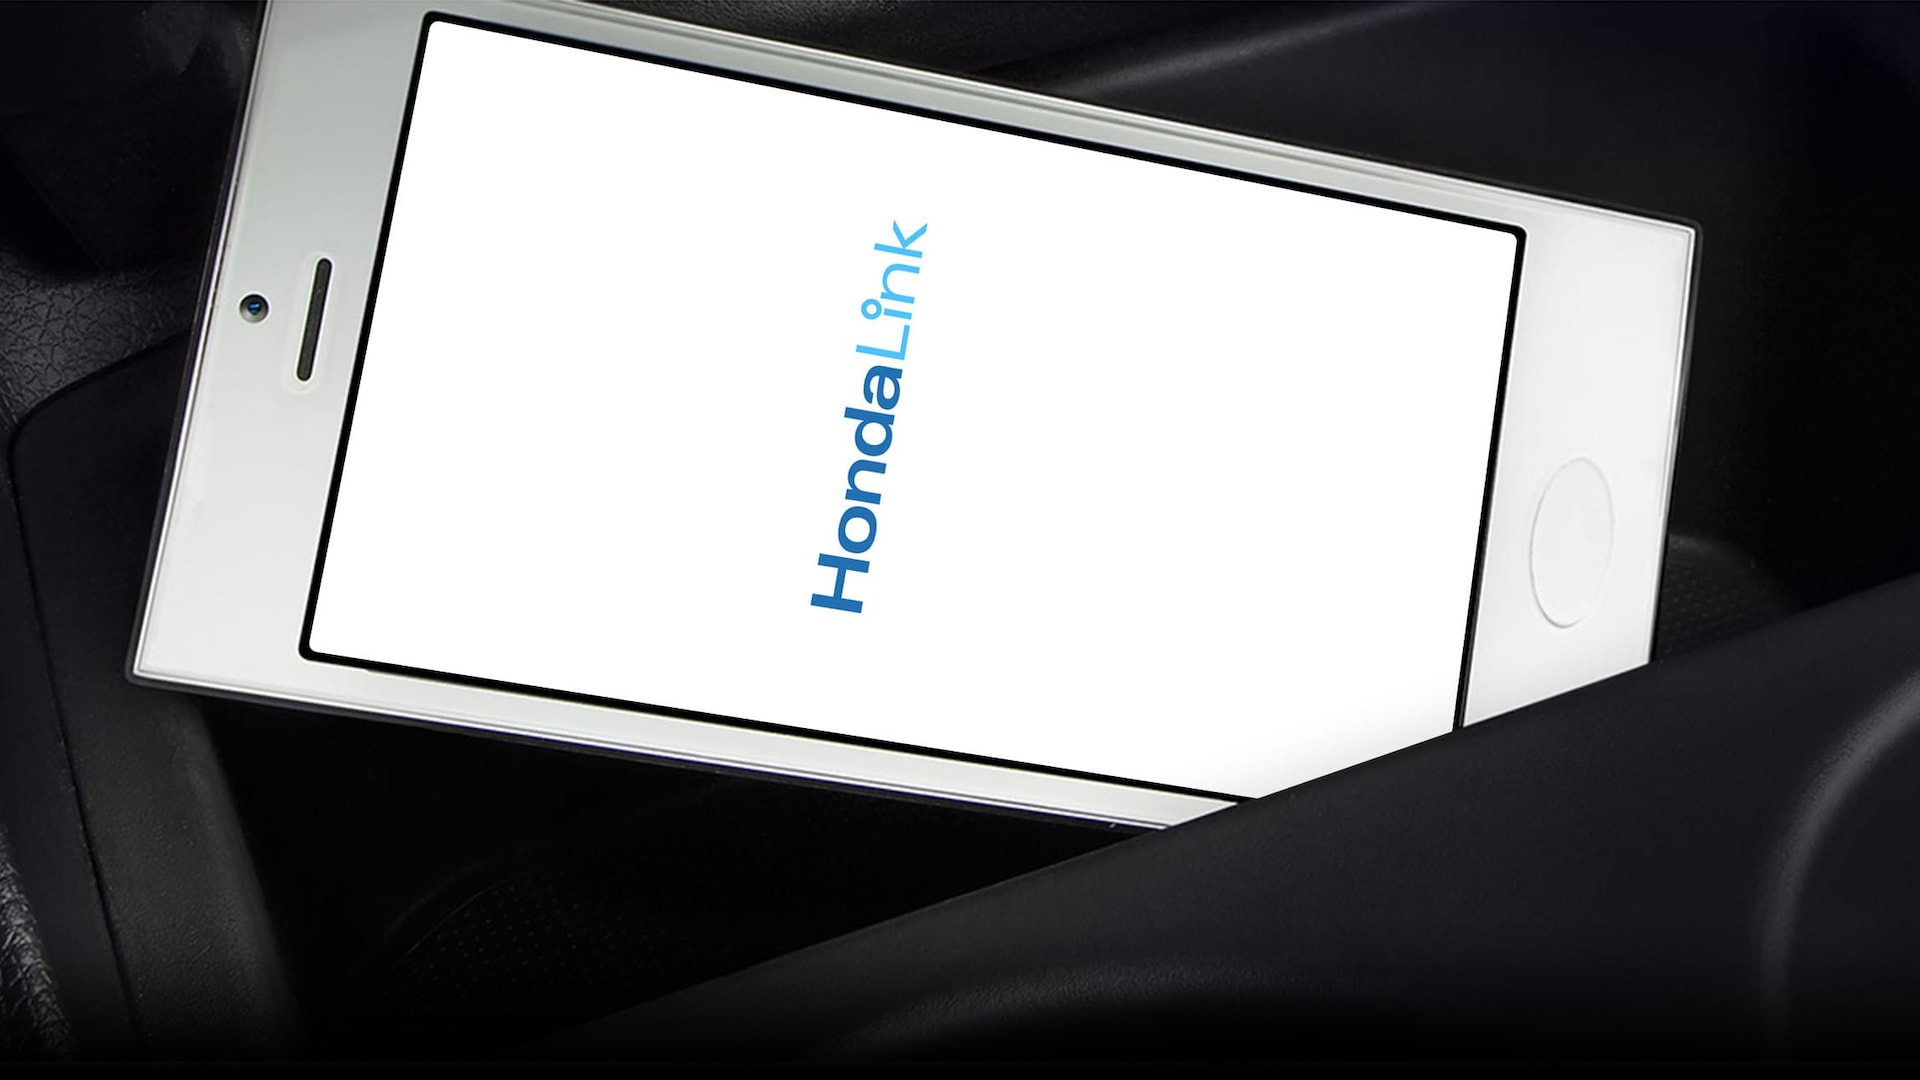 HondaLink® welcome screen detail on smartphone available for the 2020 Honda Civic Sedan.